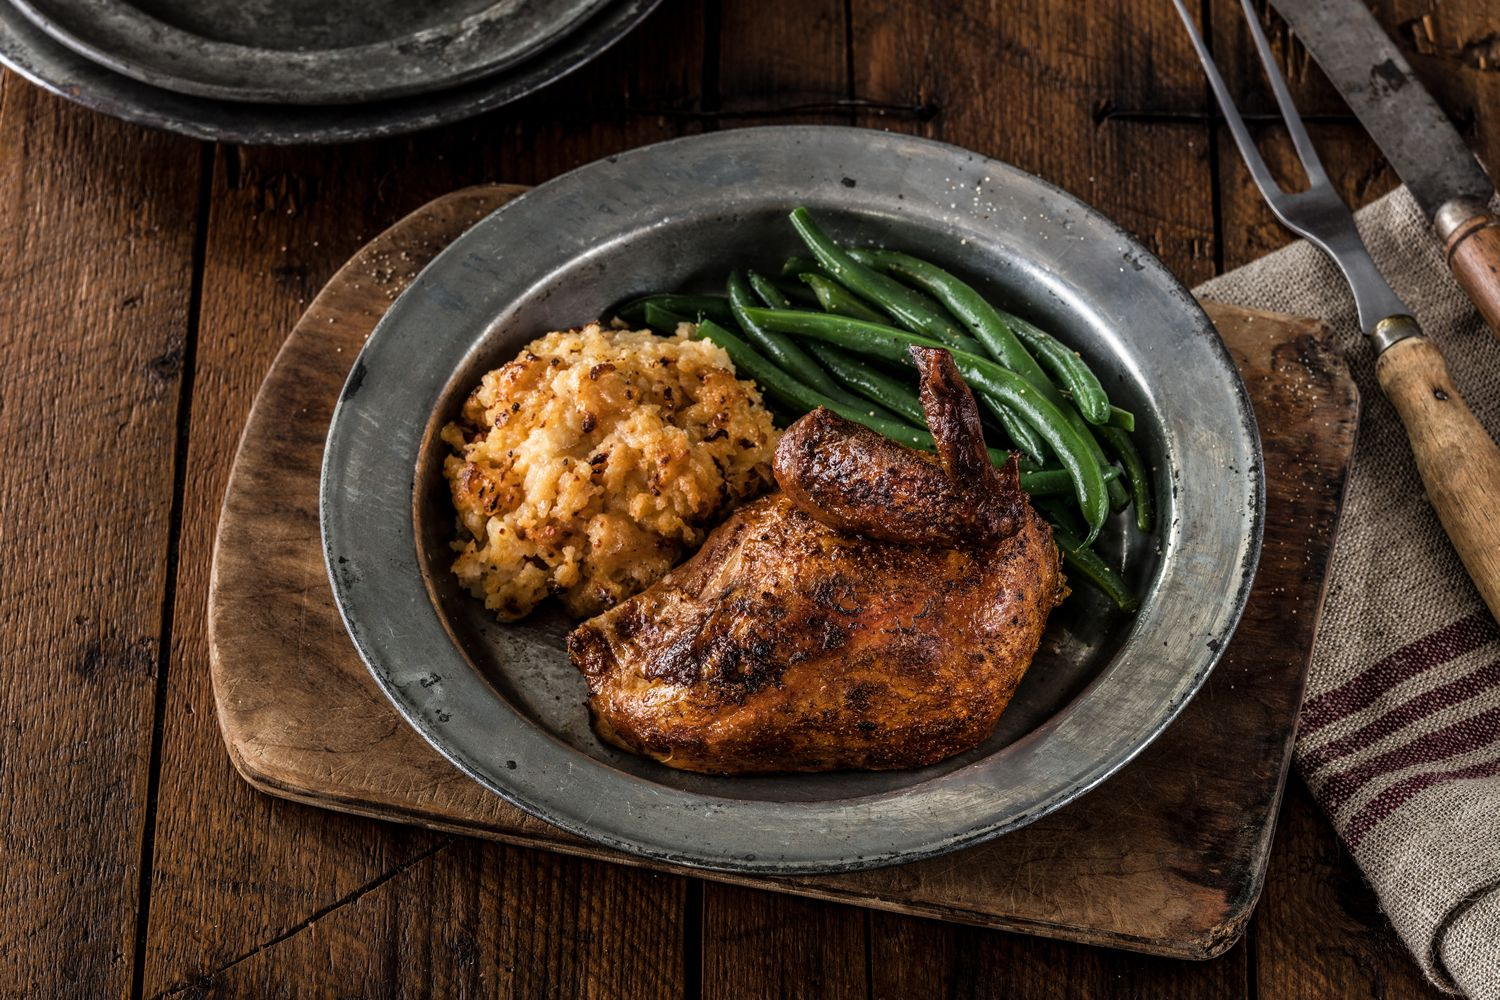 Cowboy Chicken Brings Wood-Fired Rotisserie Chicken to Kansas on Nov. 16